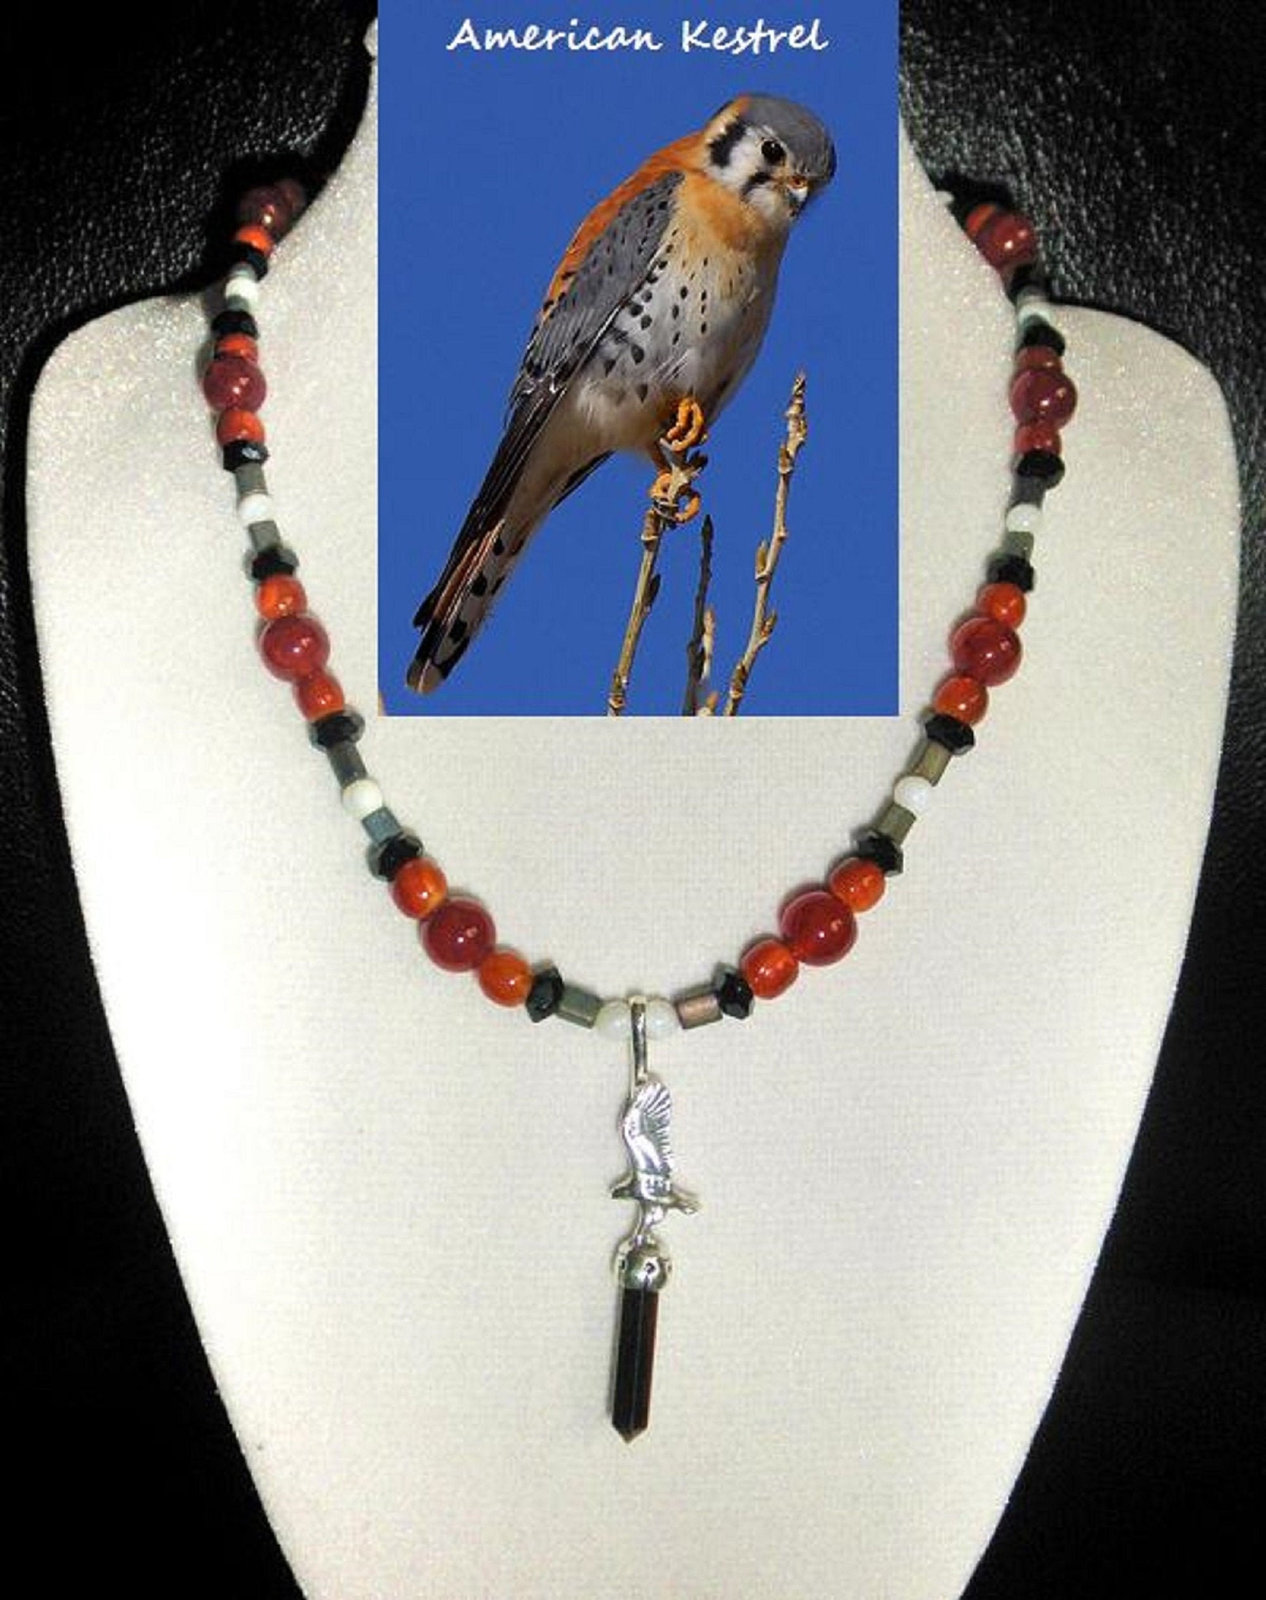 Primary image for American Kestral custom artisan handcrafted  genuine fire agate, jet, cherry amb